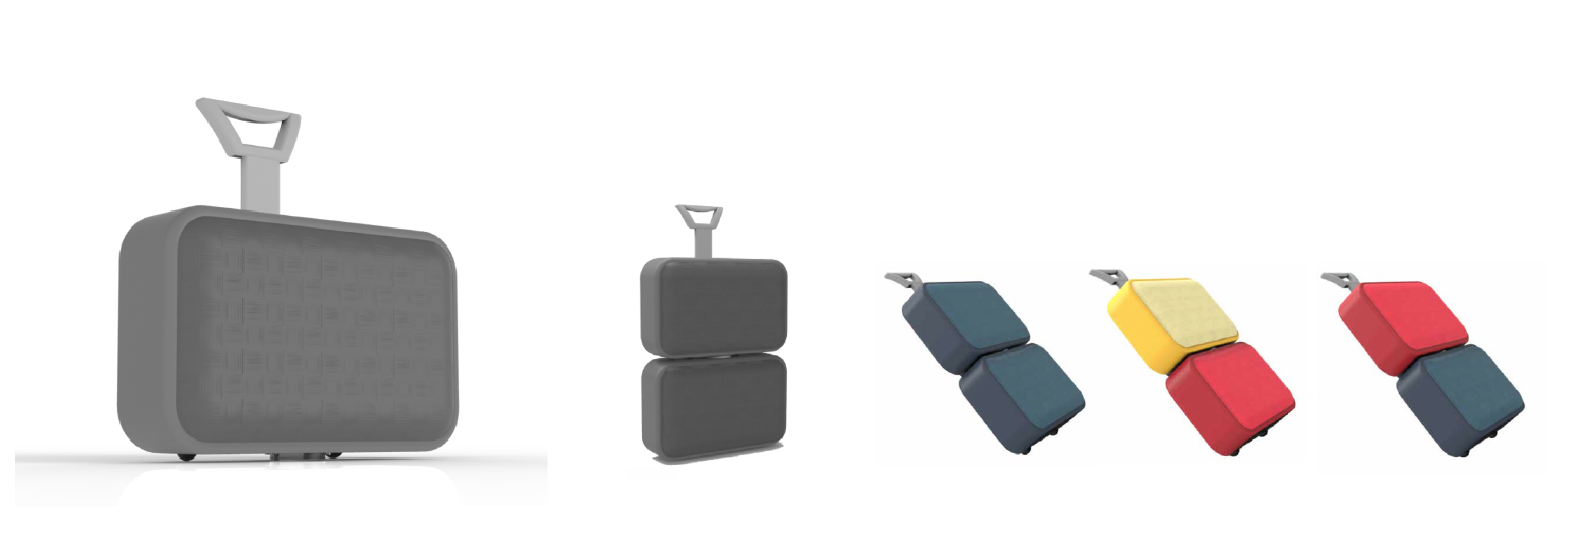 luggage concept